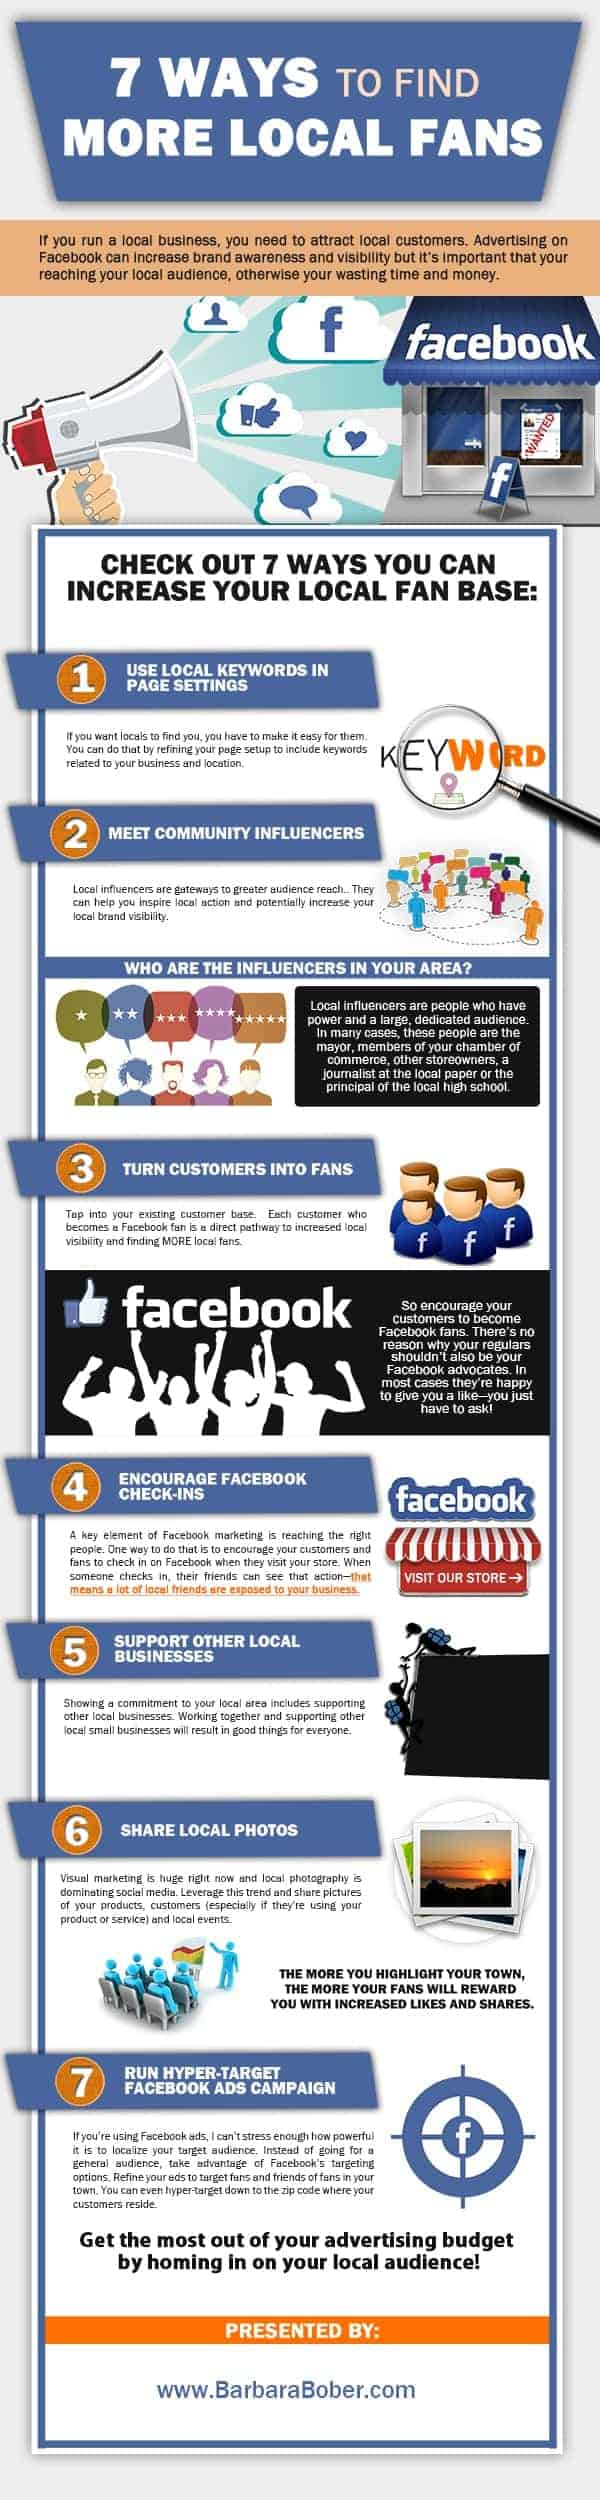 [Infographic] 7 Ways To Find More Local Fans